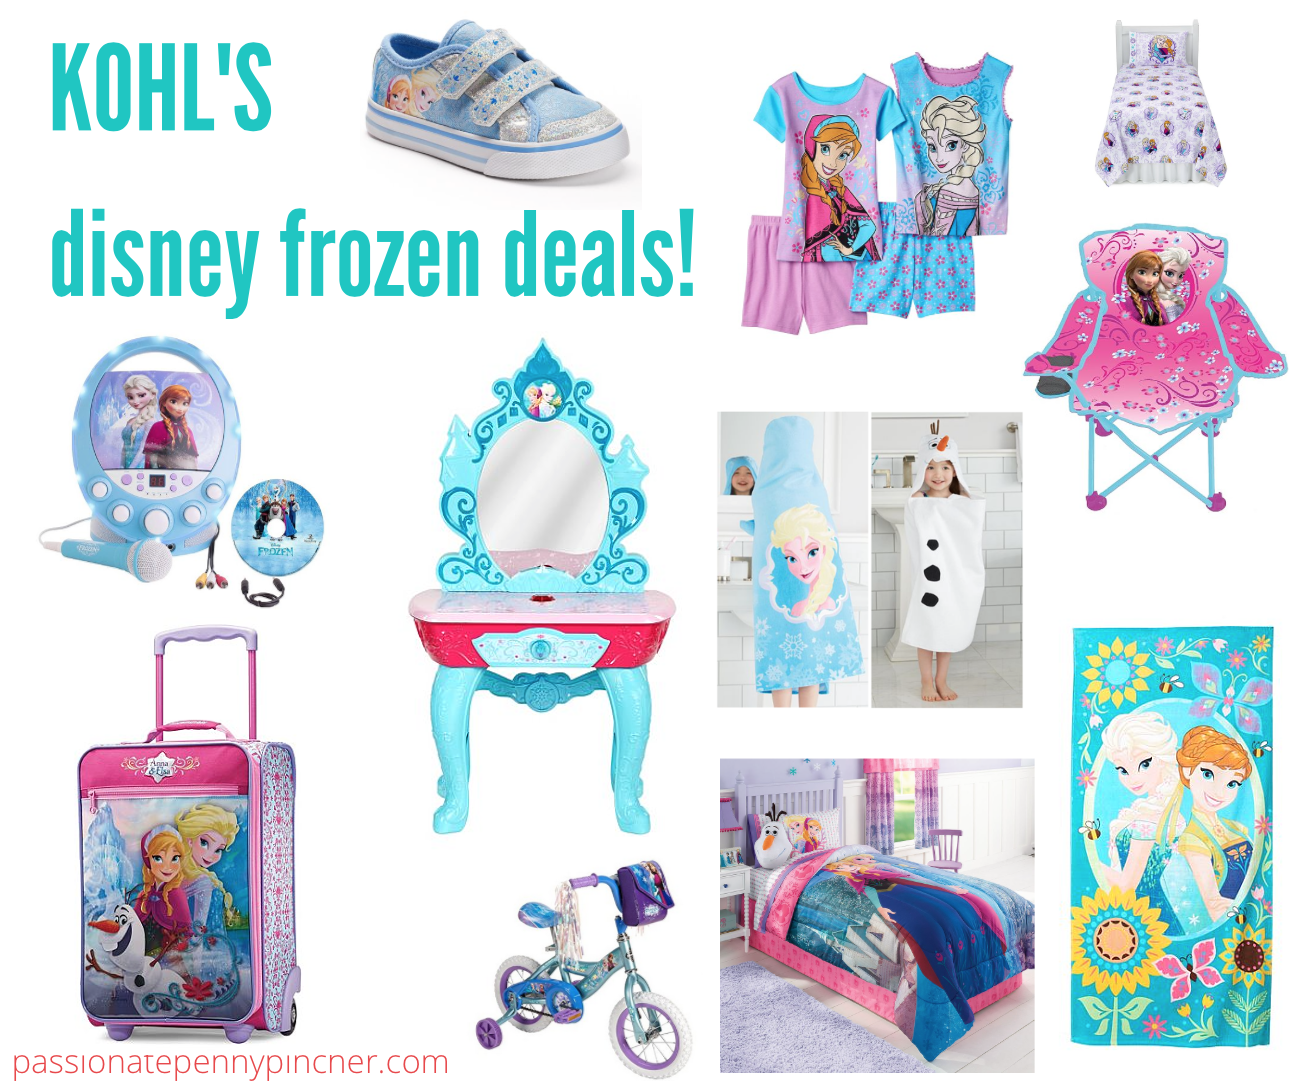 f47bac79d1200 Kohl's: Disney Frozen Deals (Beauty Vanity Set, Luggage, Clothing, Shoes,  and More!)